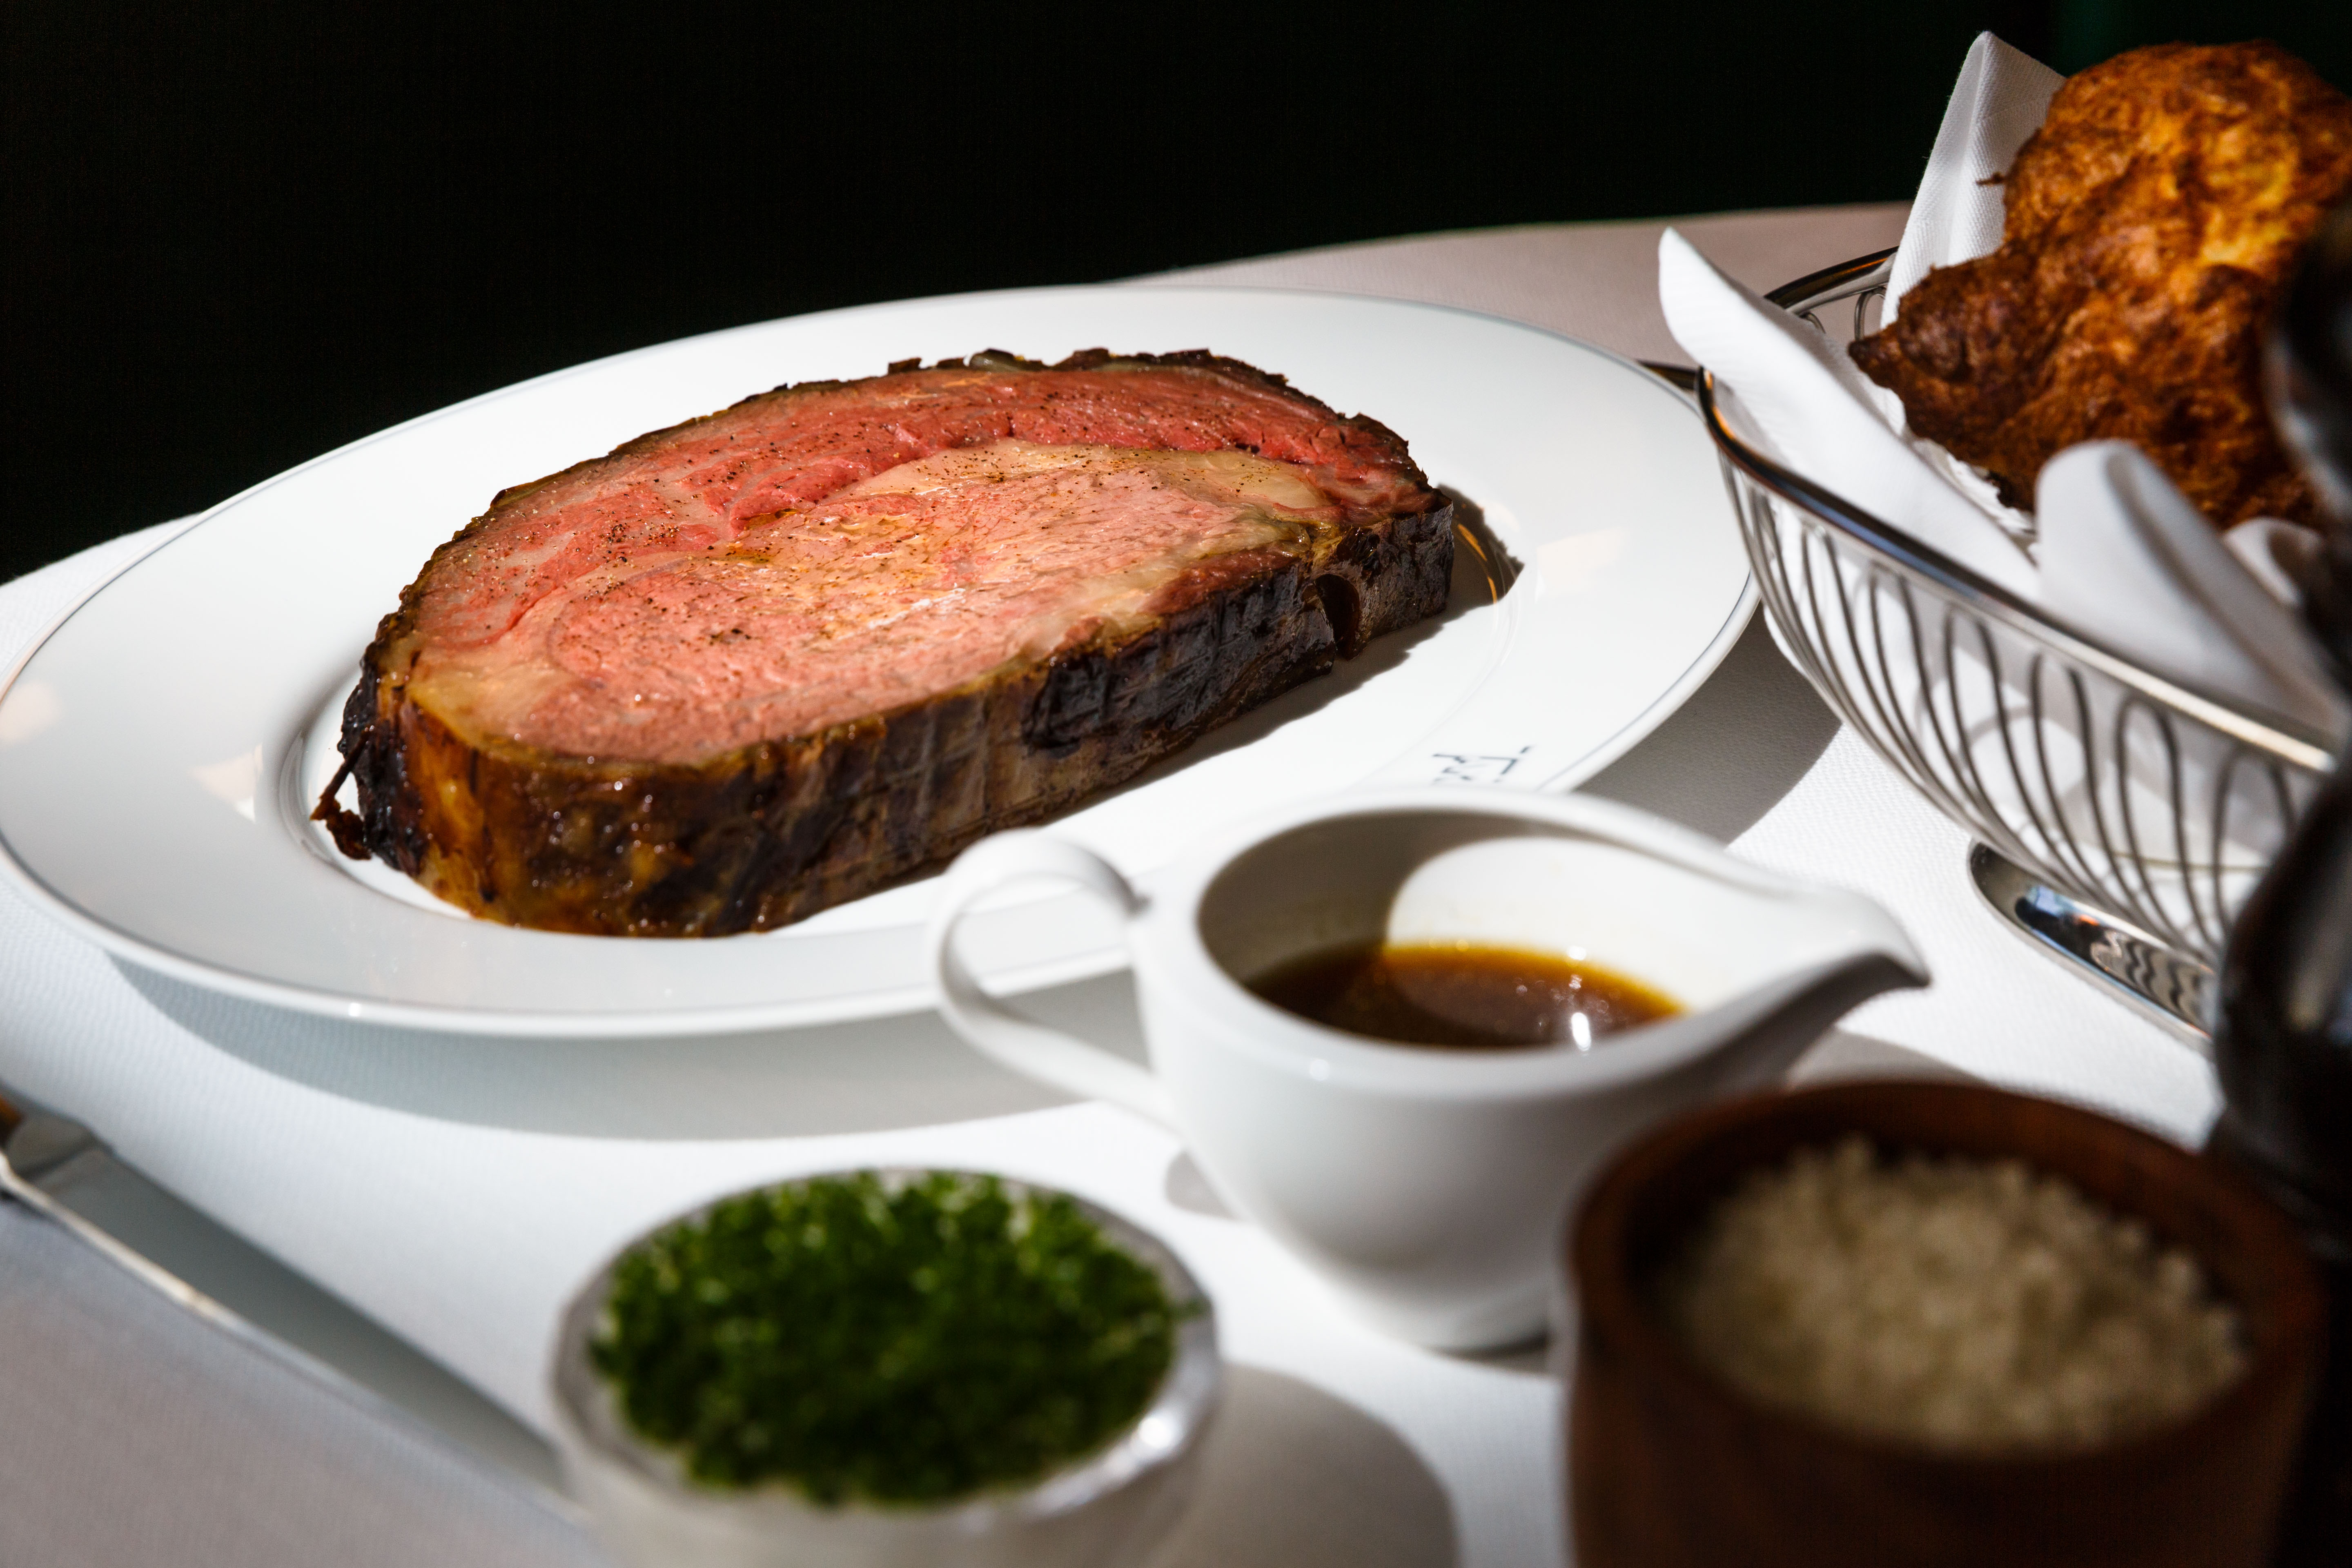 A large, pink prime rib sits on a white plate, with small side dishes in the foreground